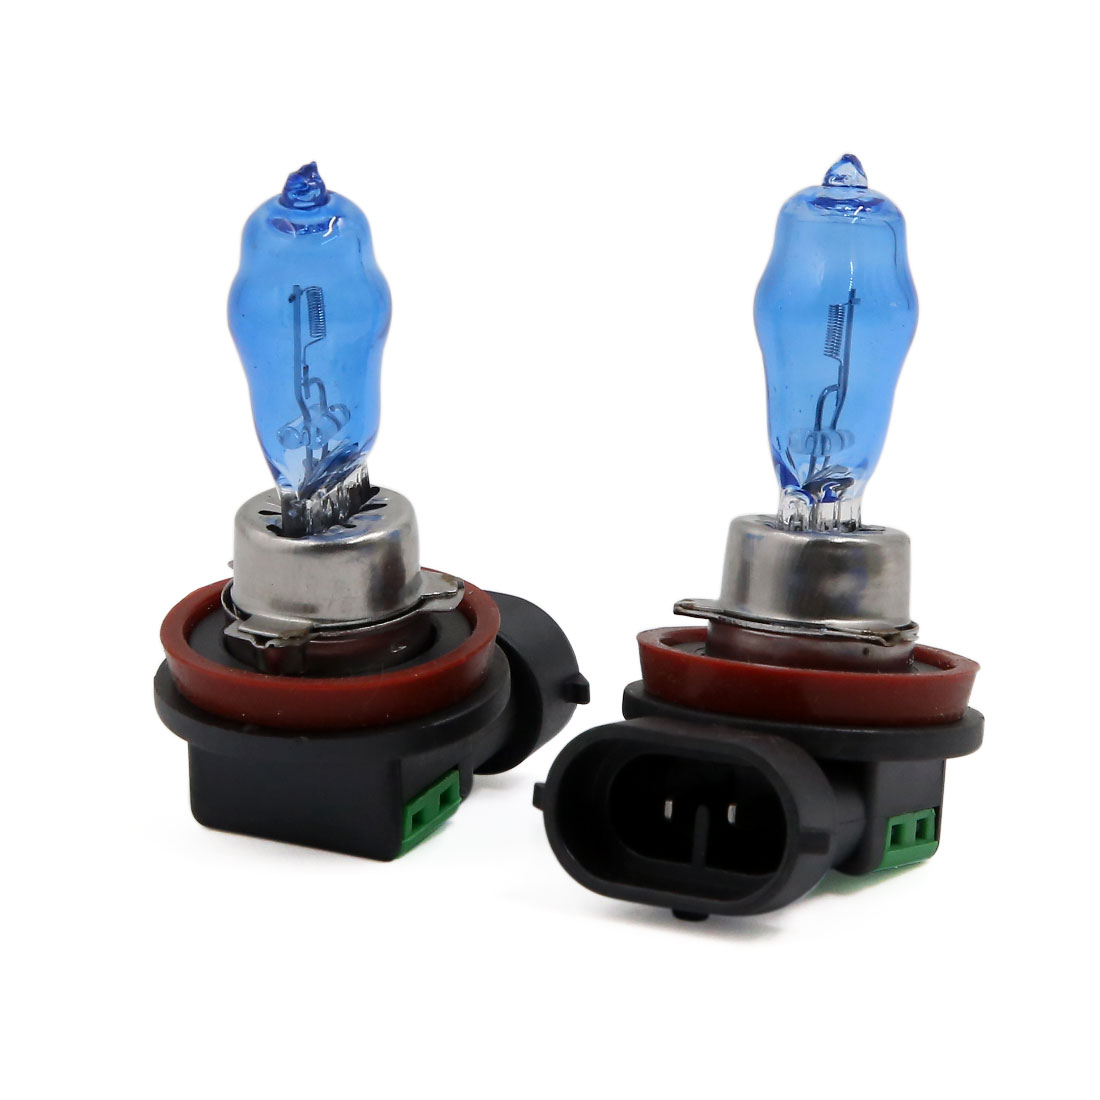 Pair H8 Xenon Halogen HOD Fog Bulb Super White Auto Car Headlights 100W DC 12V